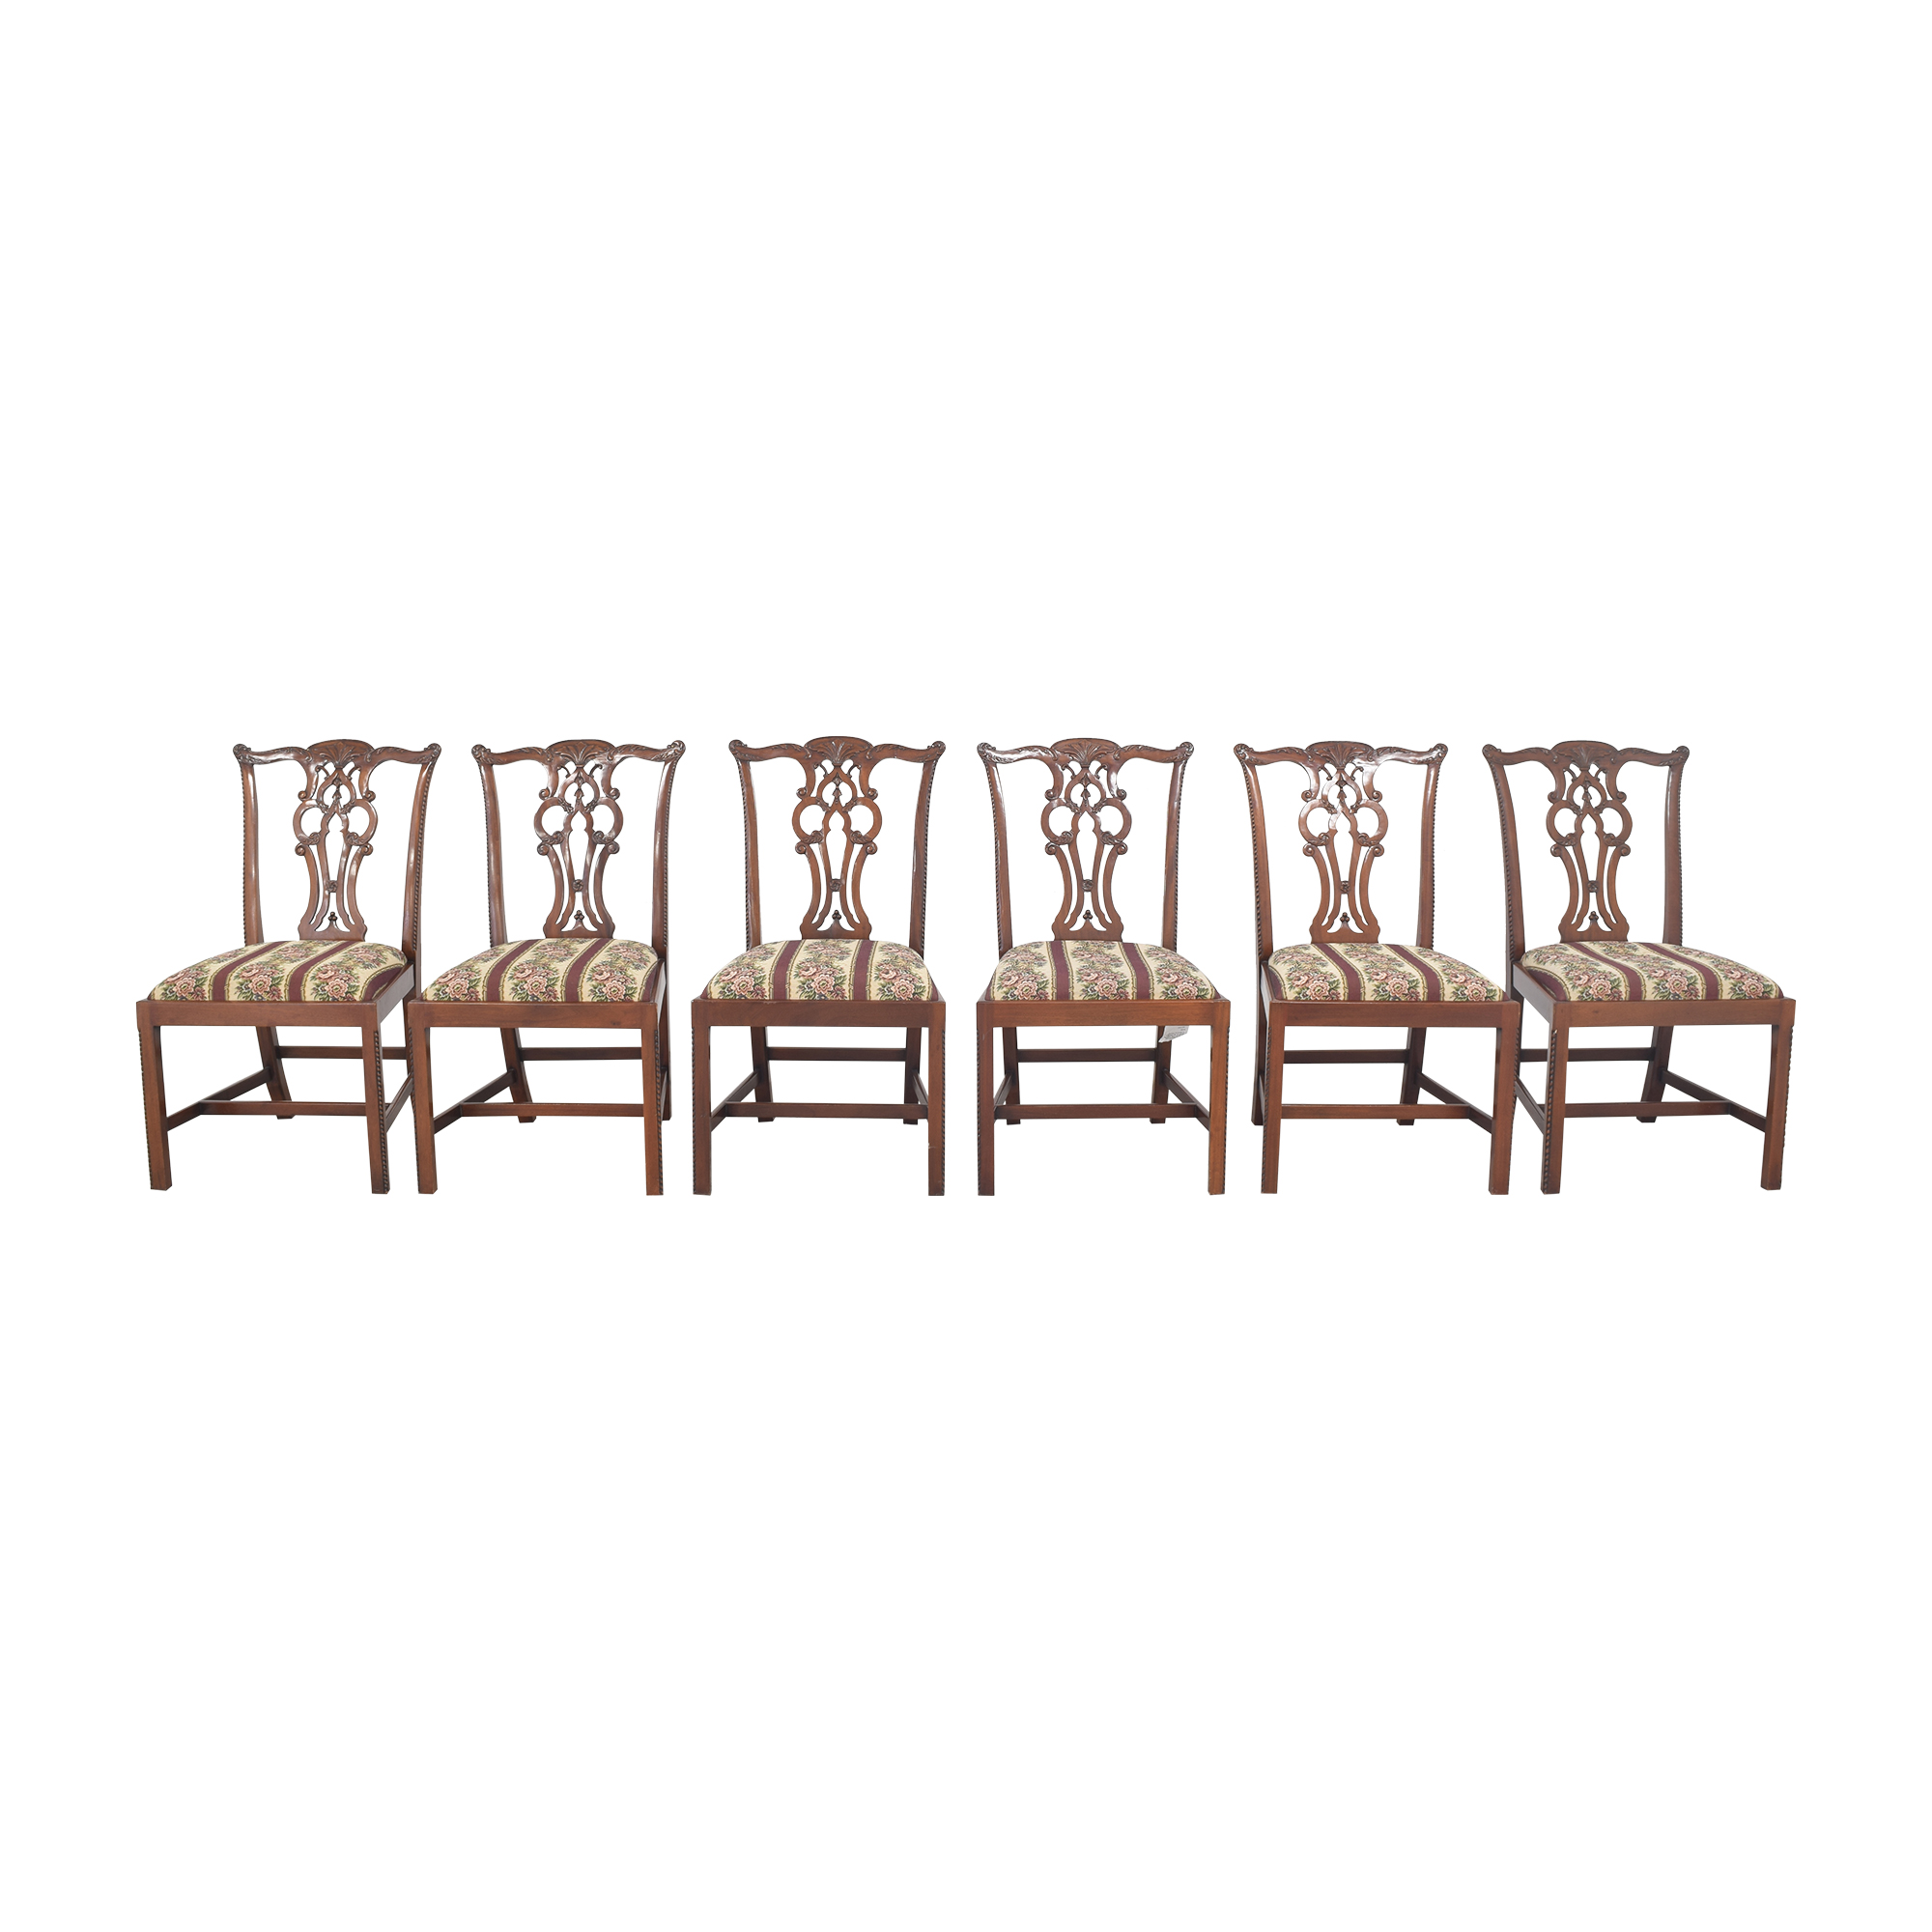 buy Maitland-Smith Maitland-Smith Chippendale Upholstered Dining Chairs online